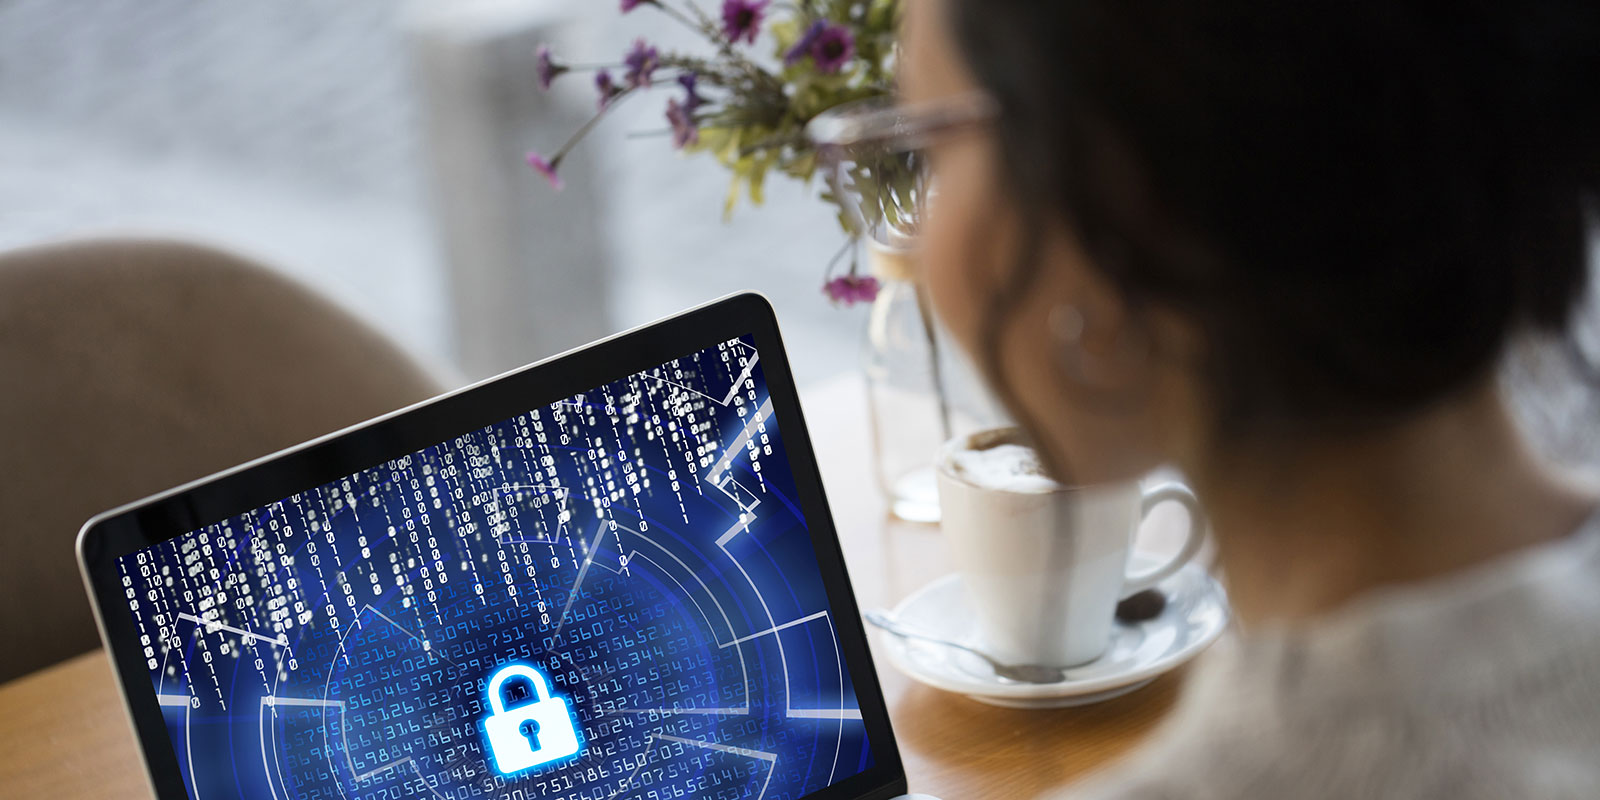 Woman looking at laptop with a lock symbol displayed